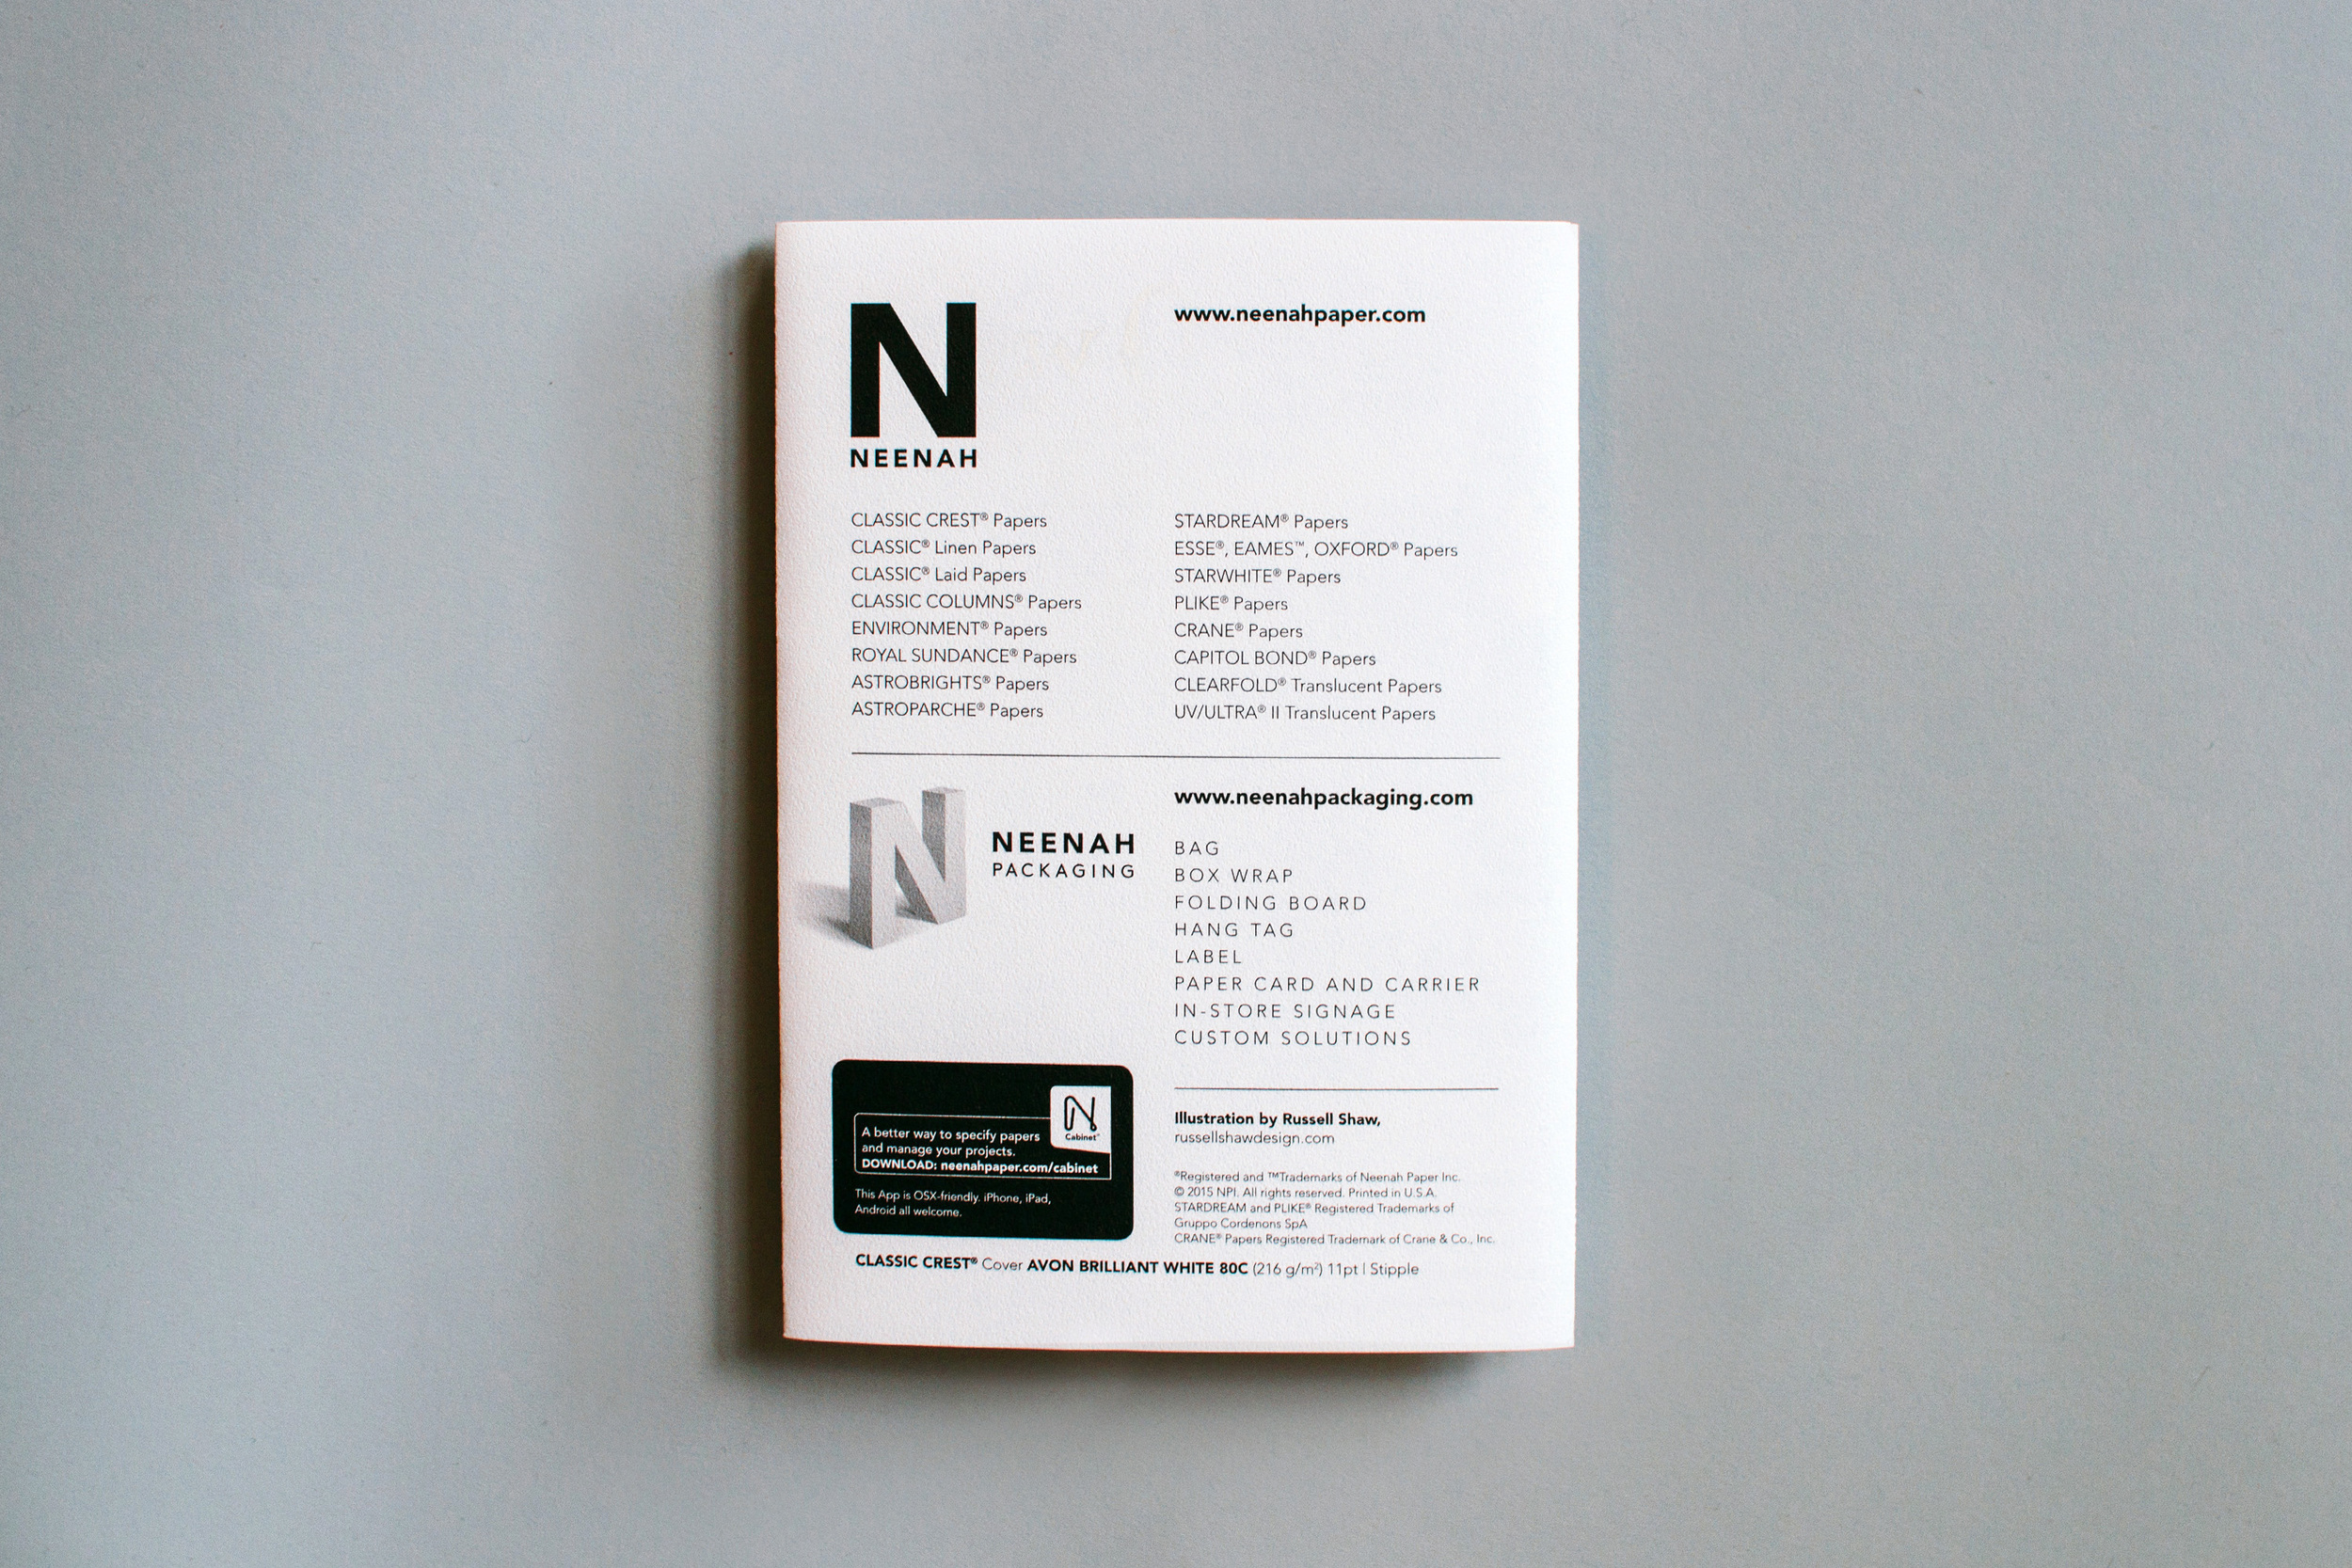 The back of the New Orleans with Neenah Paper promotional marketing design shows the line of Neenah products and Neenah Packaging options, with illustrated by Russell Shaw credit and paper information on Classic Crest Avon Brilliant White.